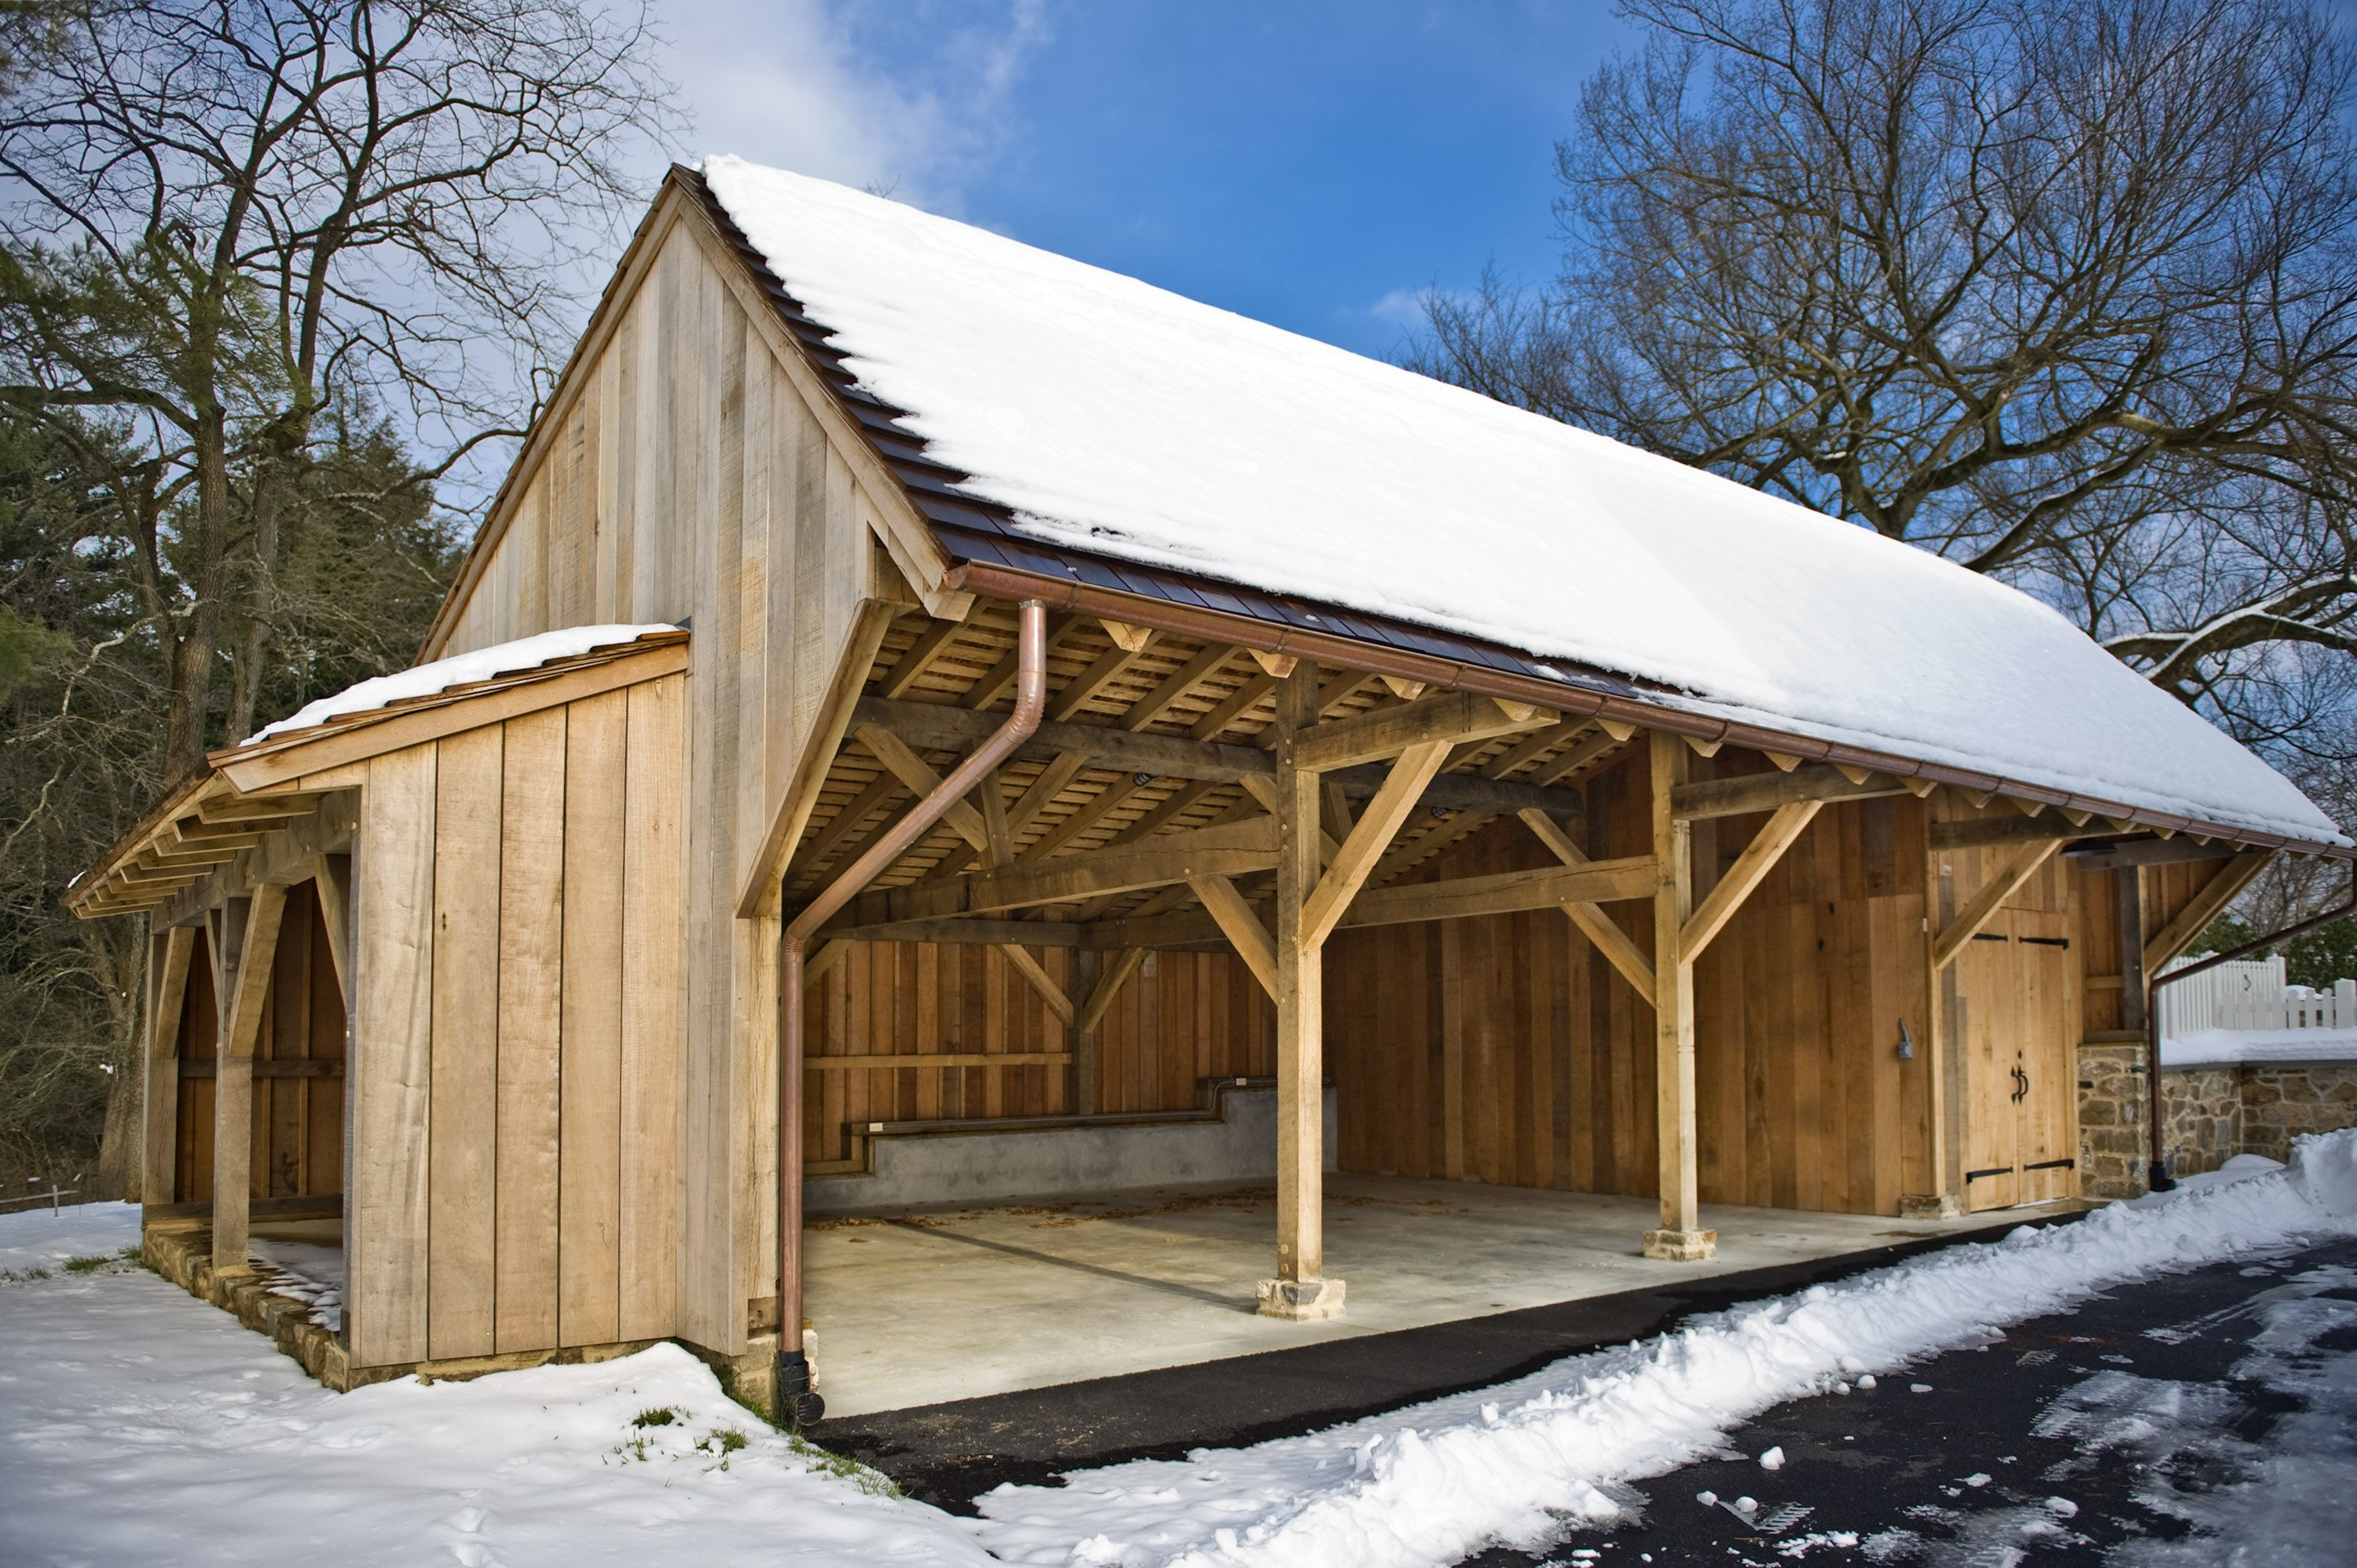 Timber Framed Carriage Shed With Firewood Storage